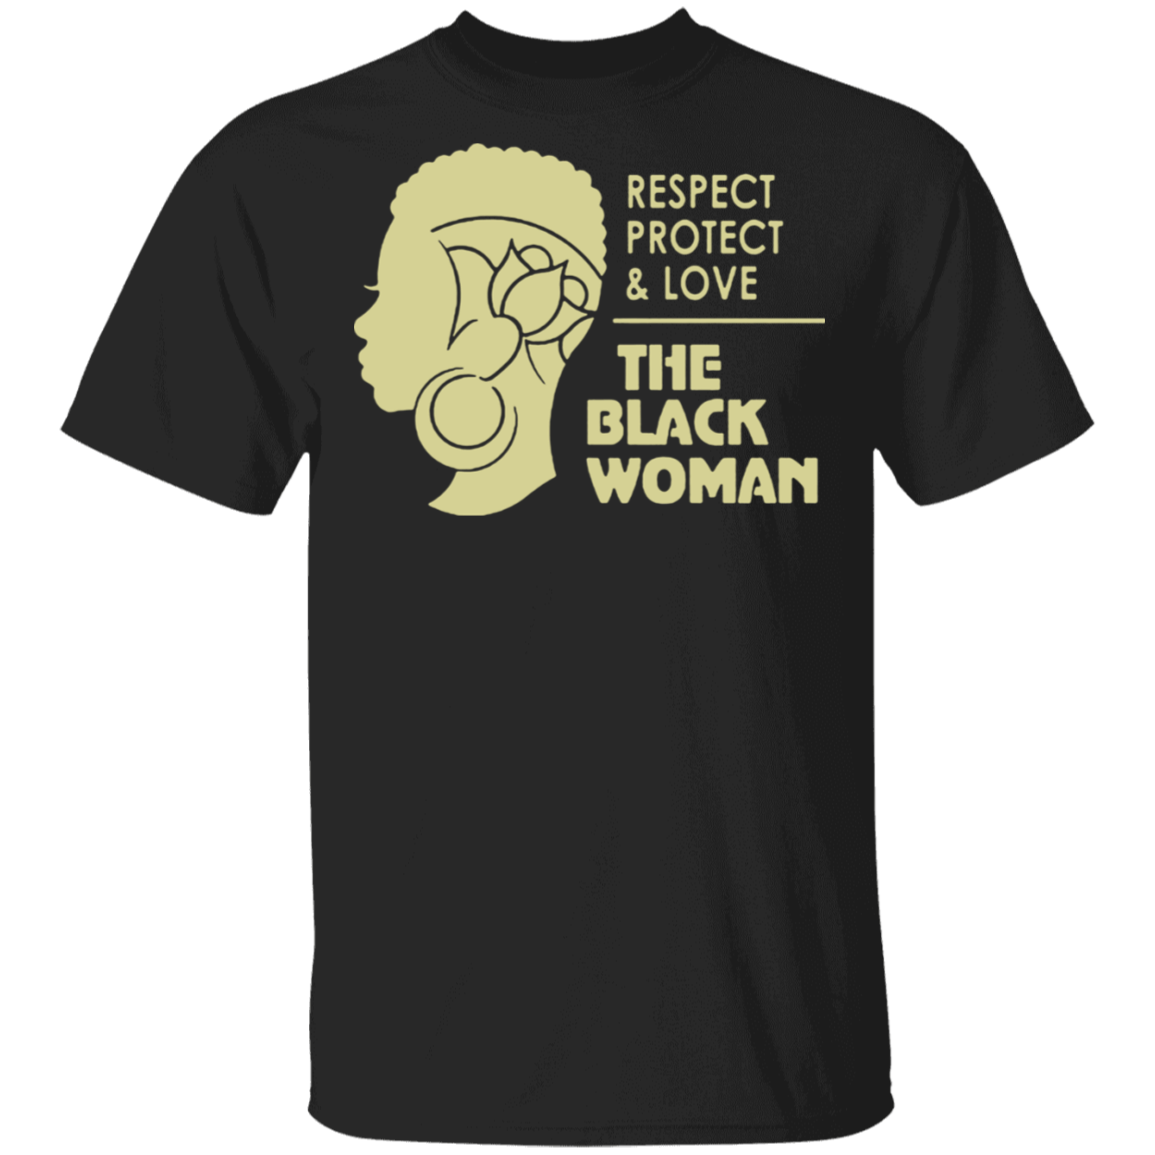 African American Women Shirt Respect Protect And Love The Black Women T-Shirt Blm